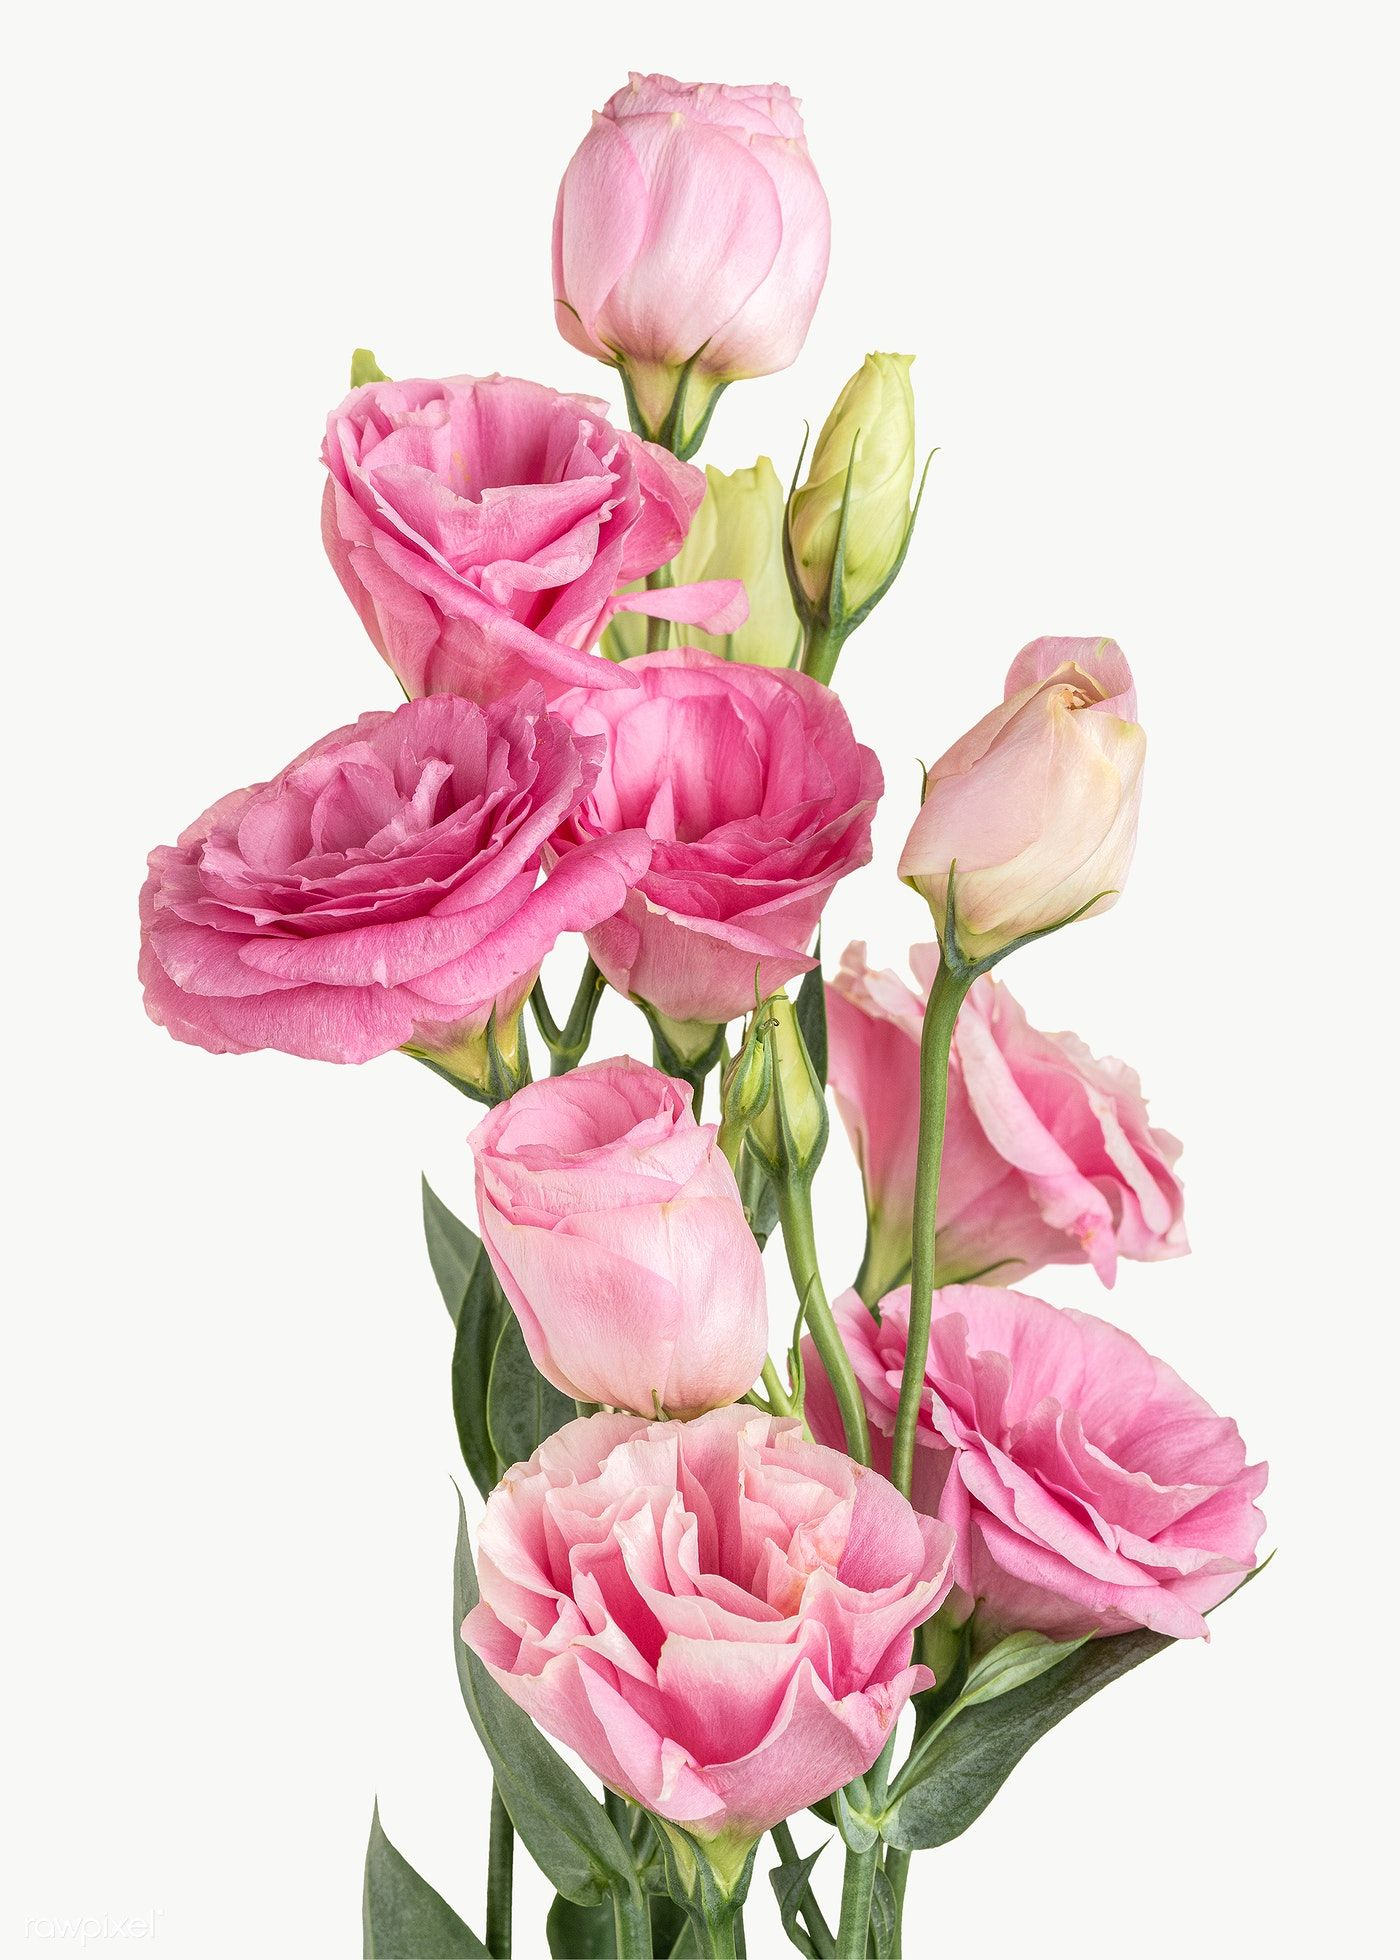 Bouquet Of Pink Lisianthus Flower Element Transparent Png Free Image By Rawpixel Com Jira In 2020 Delphinium Flowers Flowers White Lily Flower